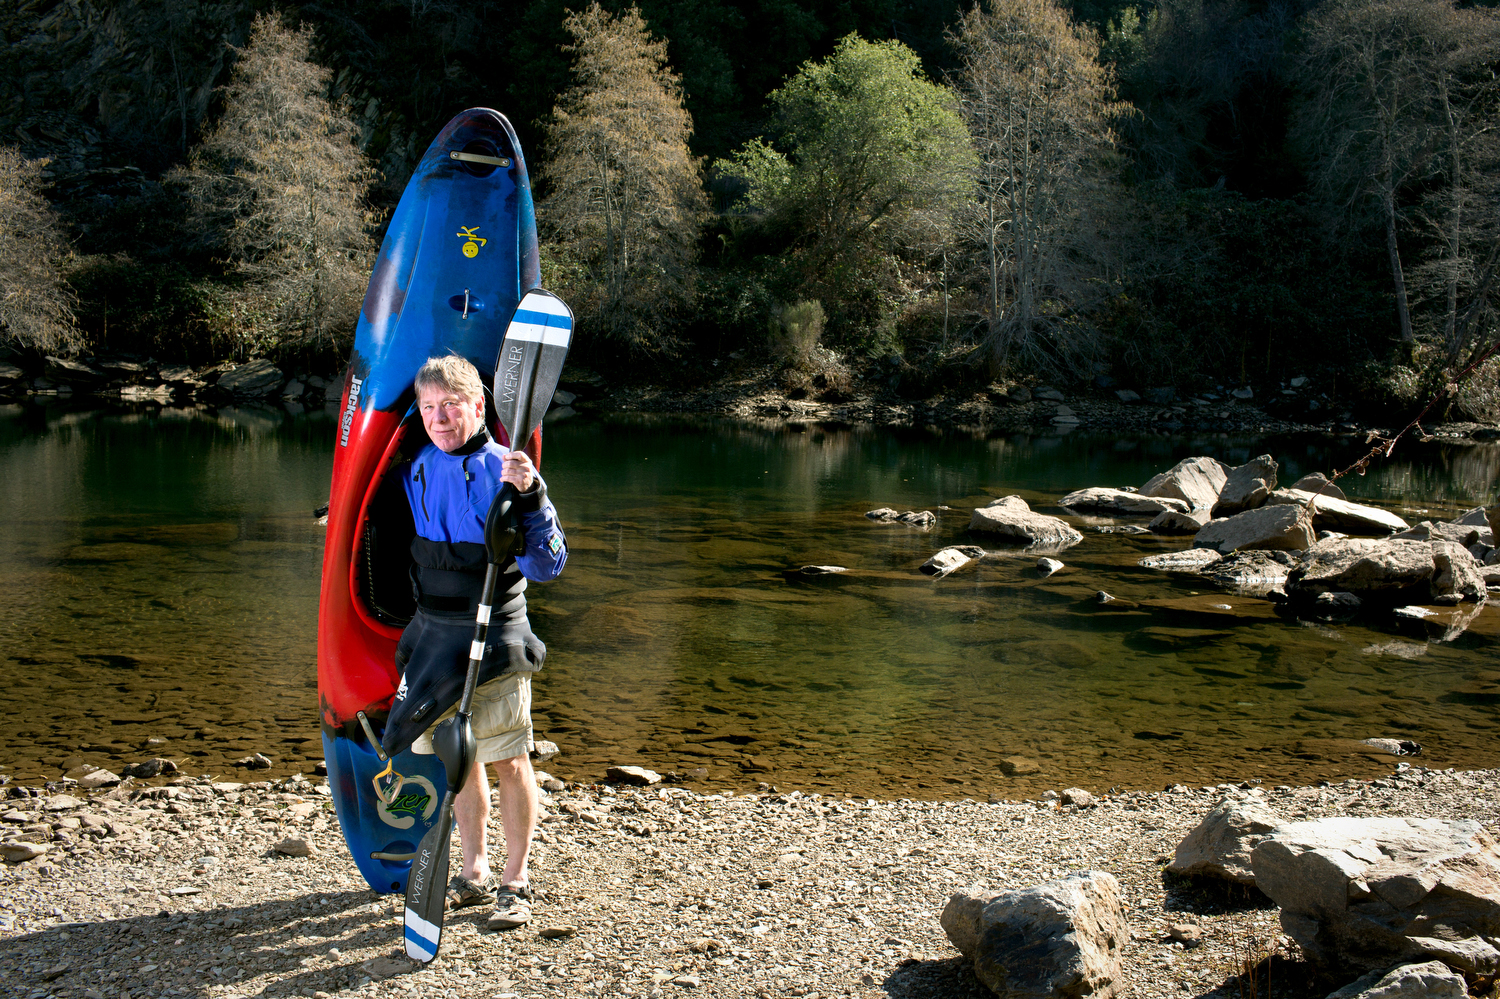 Kayaking guide John Simpkin on the South Fork of the American River.